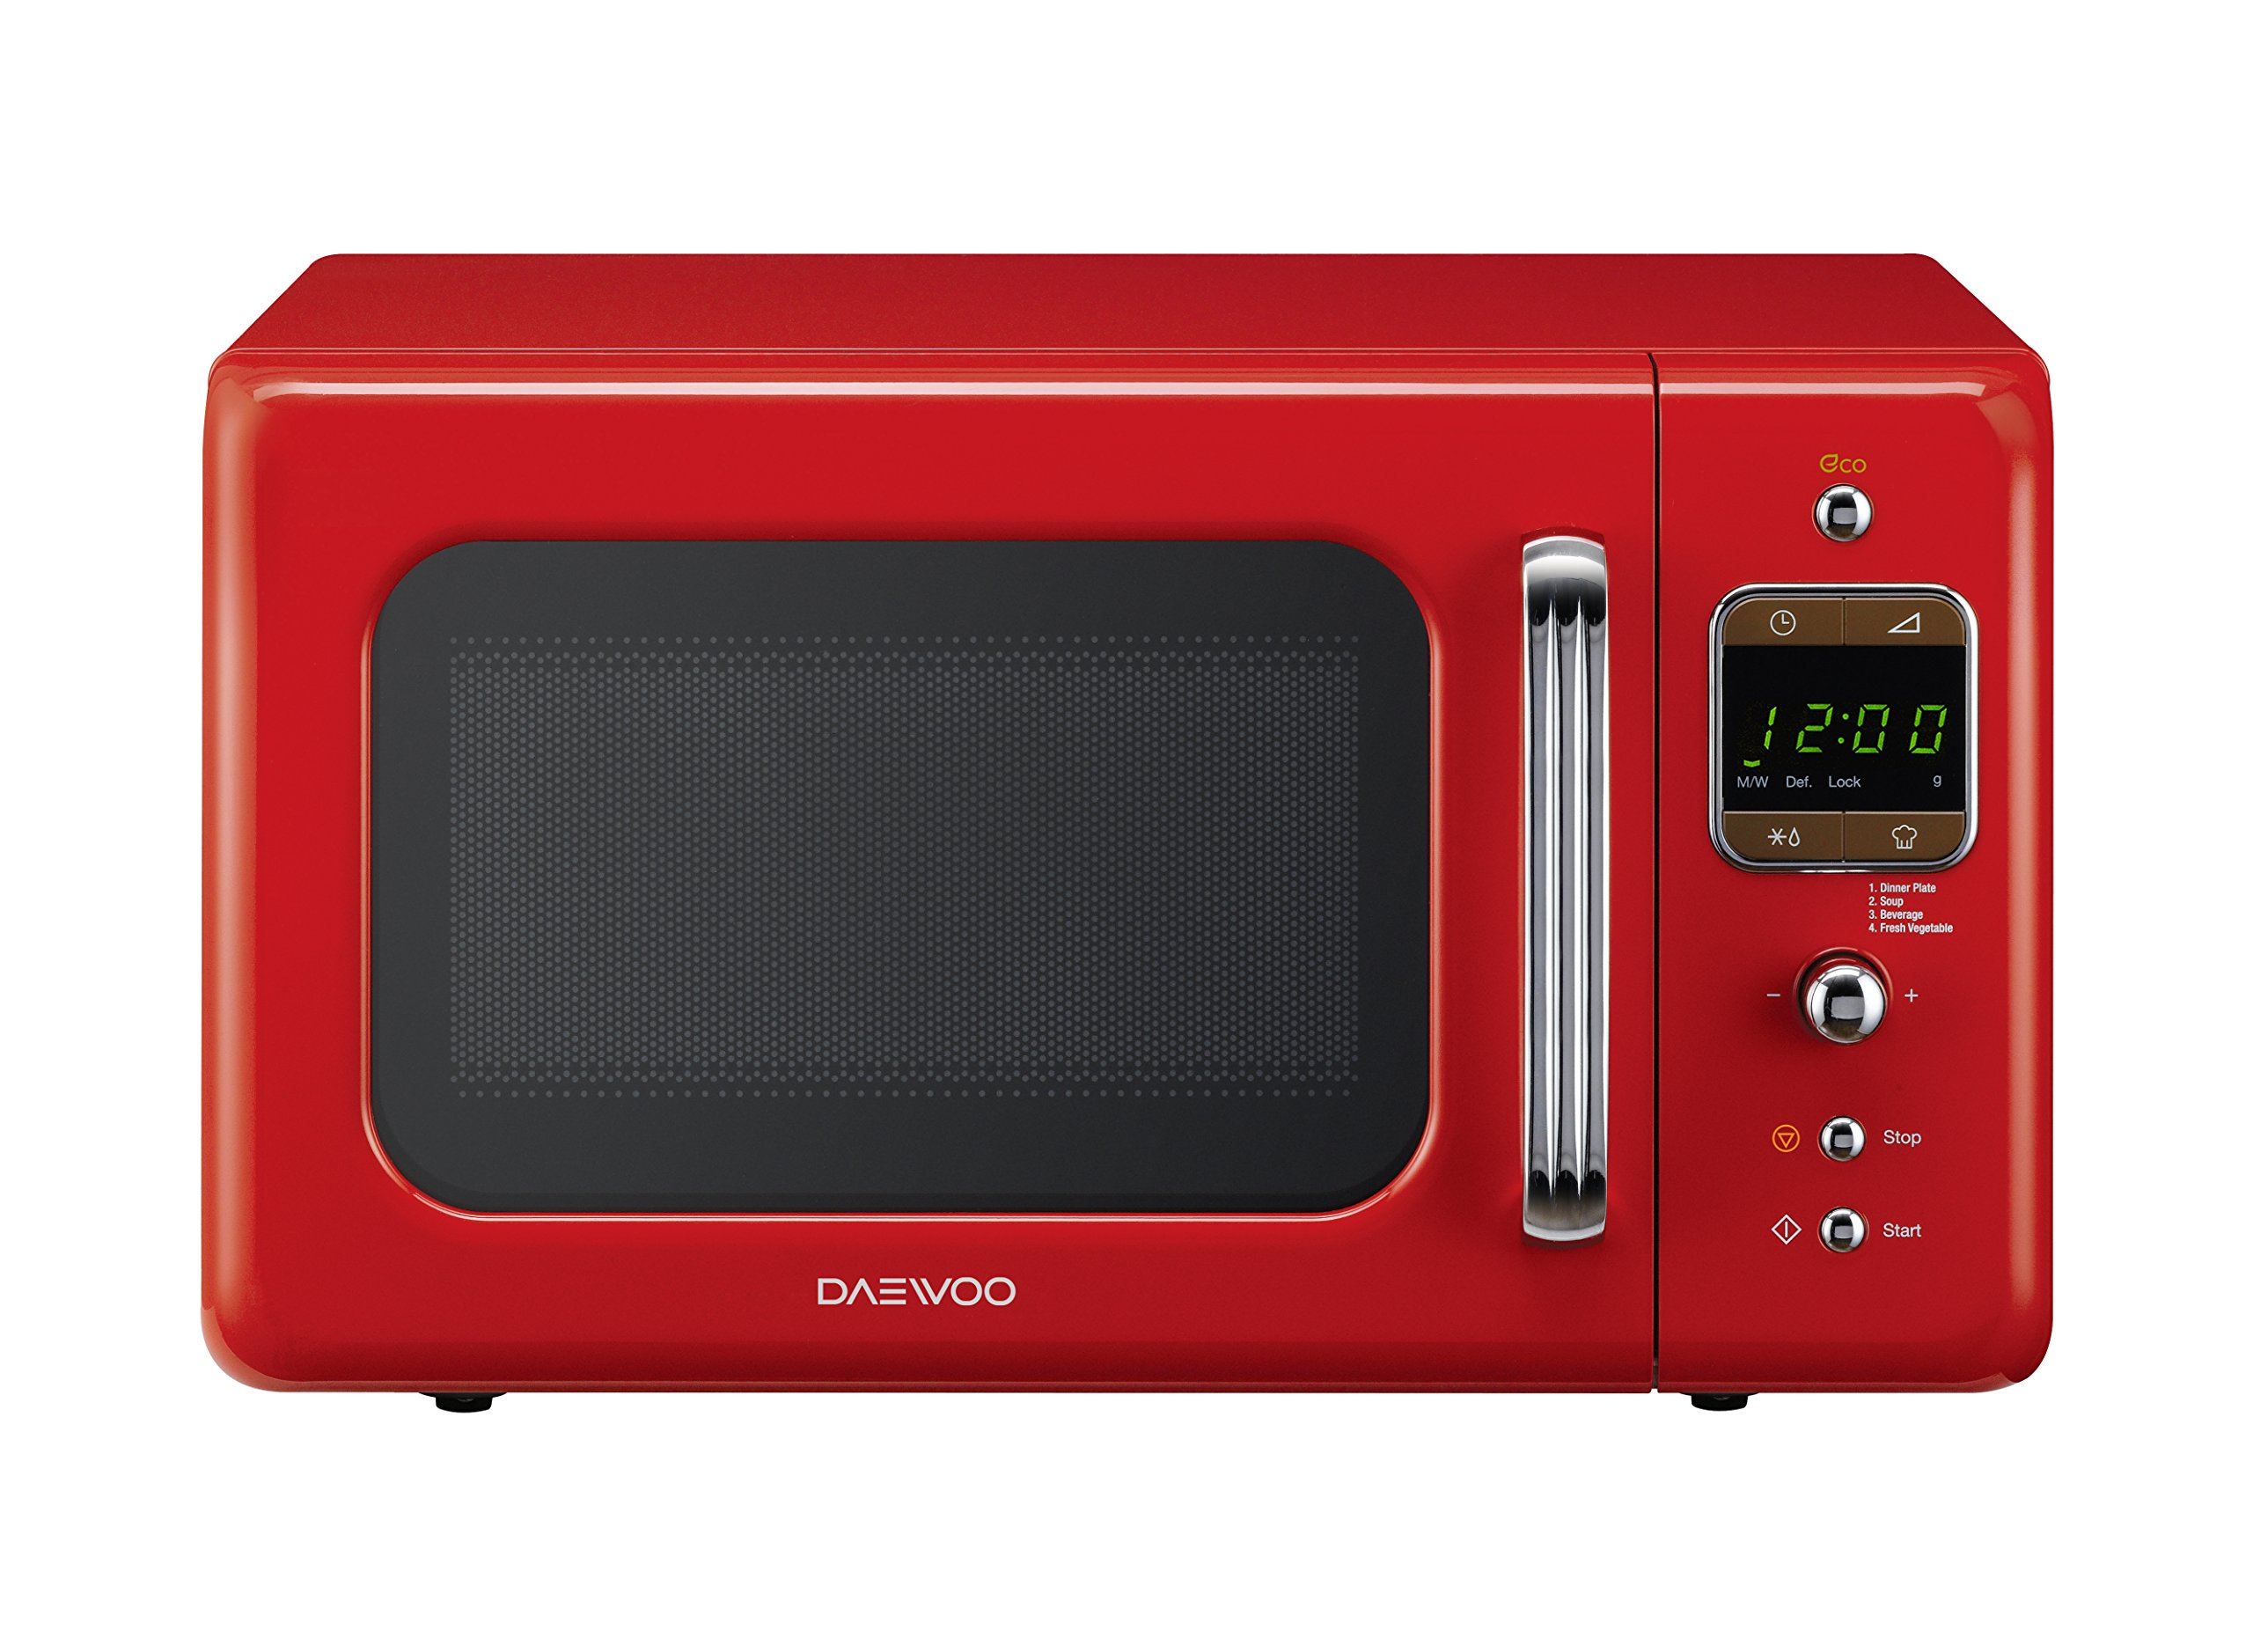 daewoo retro microwave oven red daewoo ebay. Black Bedroom Furniture Sets. Home Design Ideas